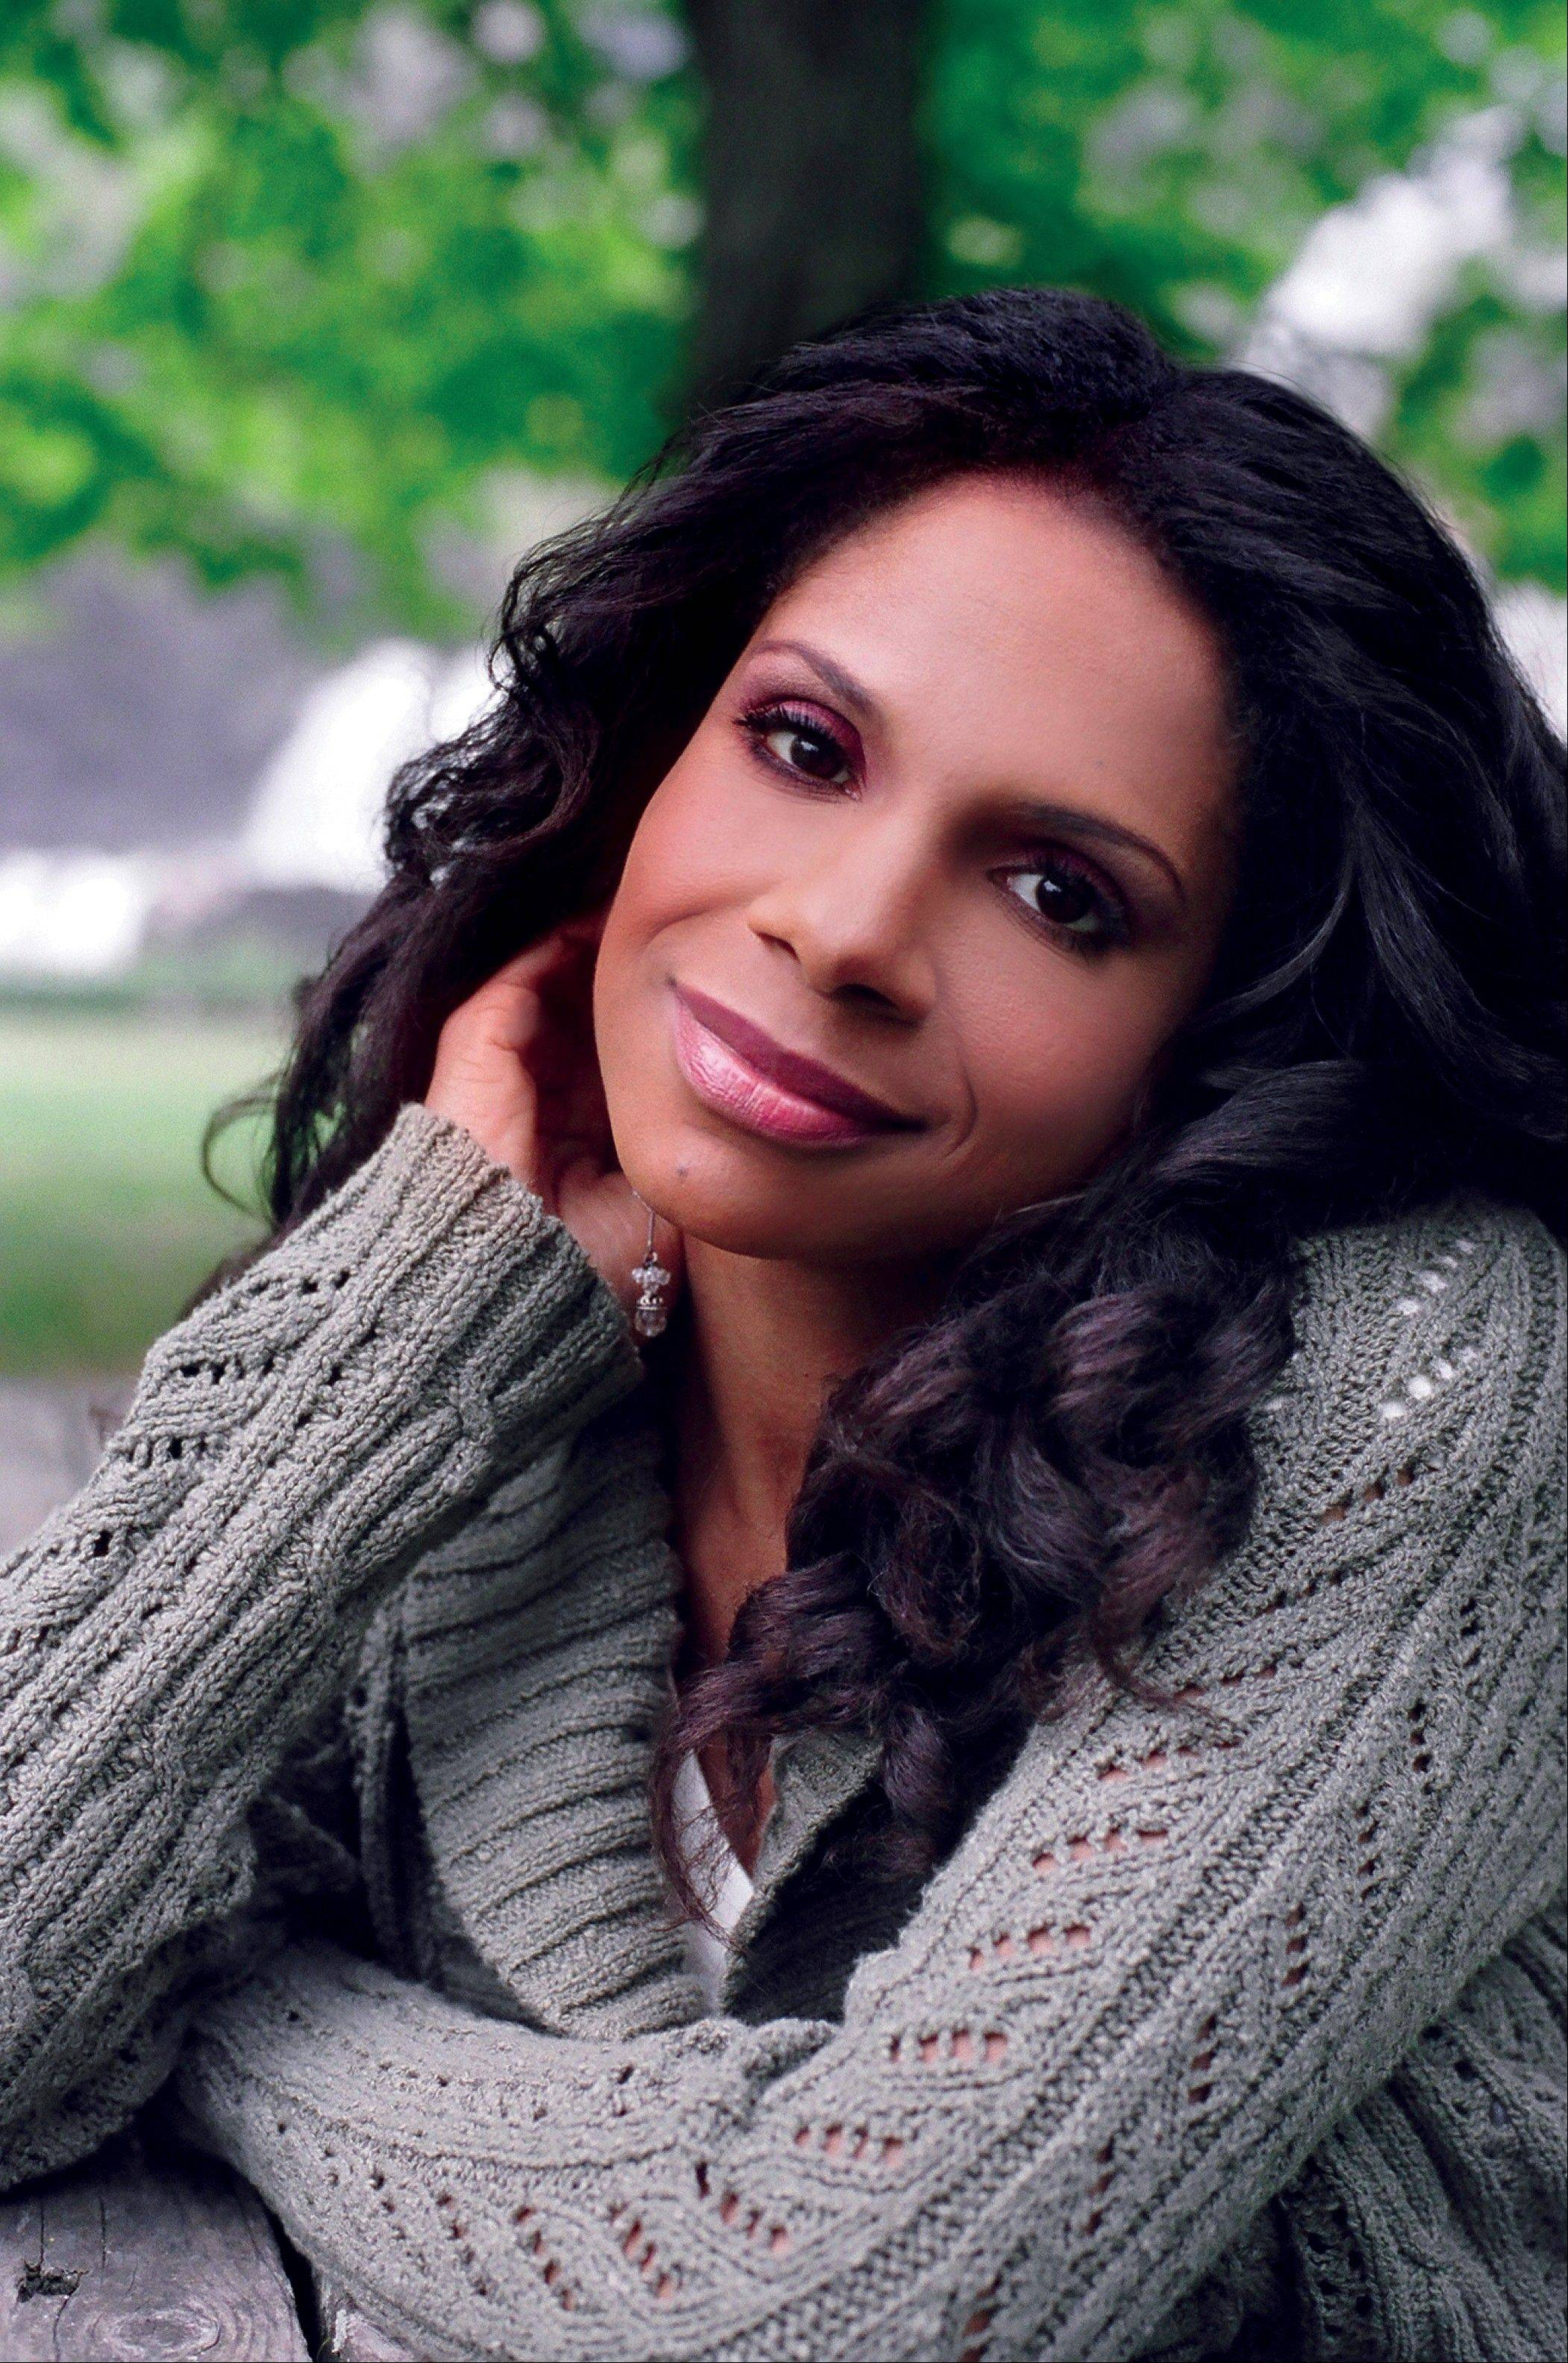 Five-time Tony Award-winner Audra McDonald is set to perform at Symphony Center in Chicago.